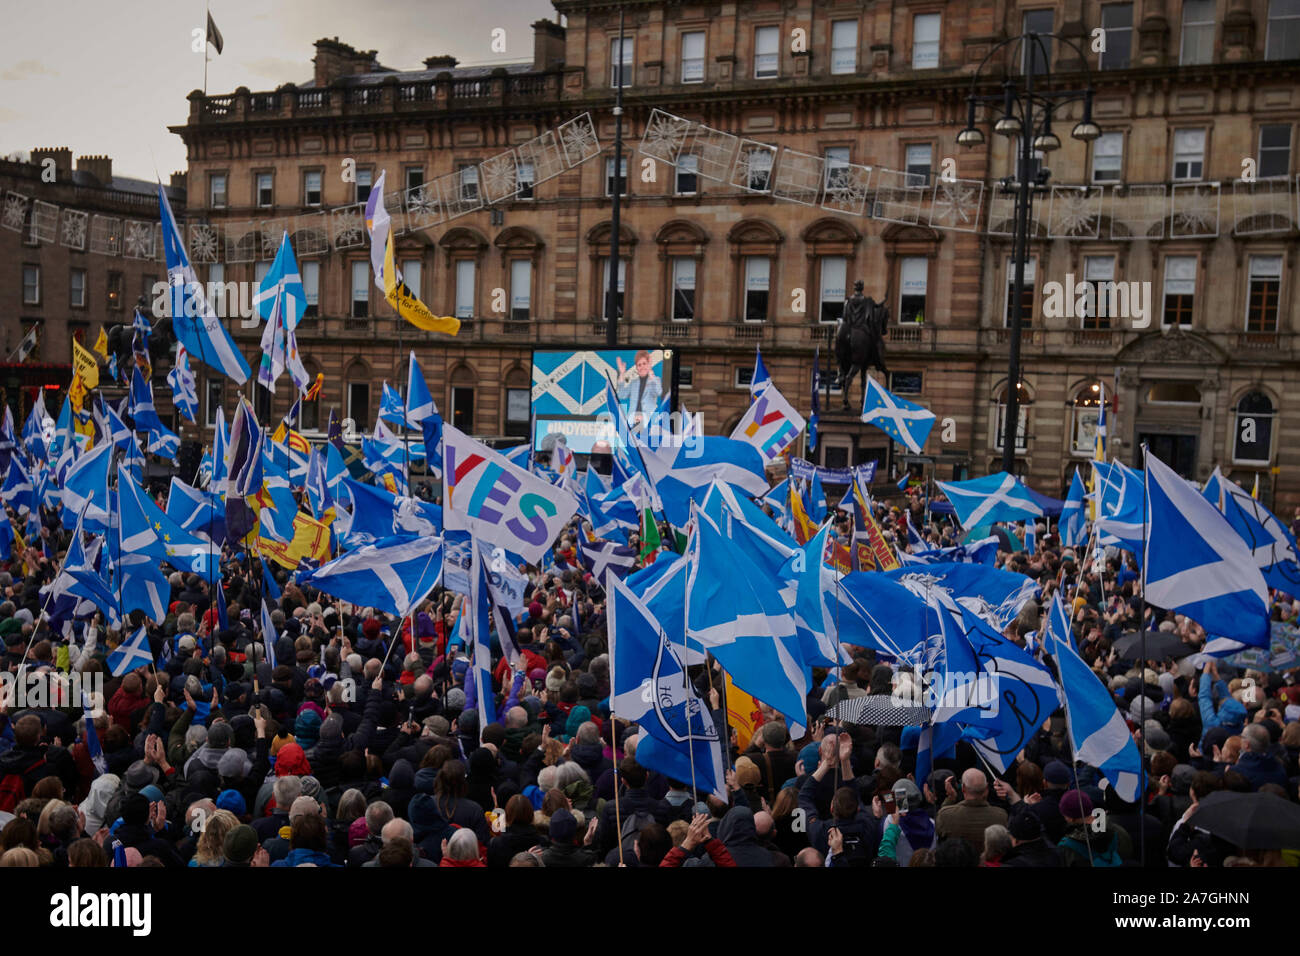 Glasgow, Scotland, UK. 02nd Nov 2019. First Minister Nicola Sturgeon speaks at a rally in support of Scottish Independence which takes place in George Square. credit steven scott taylor / alamy live news Stock Photo